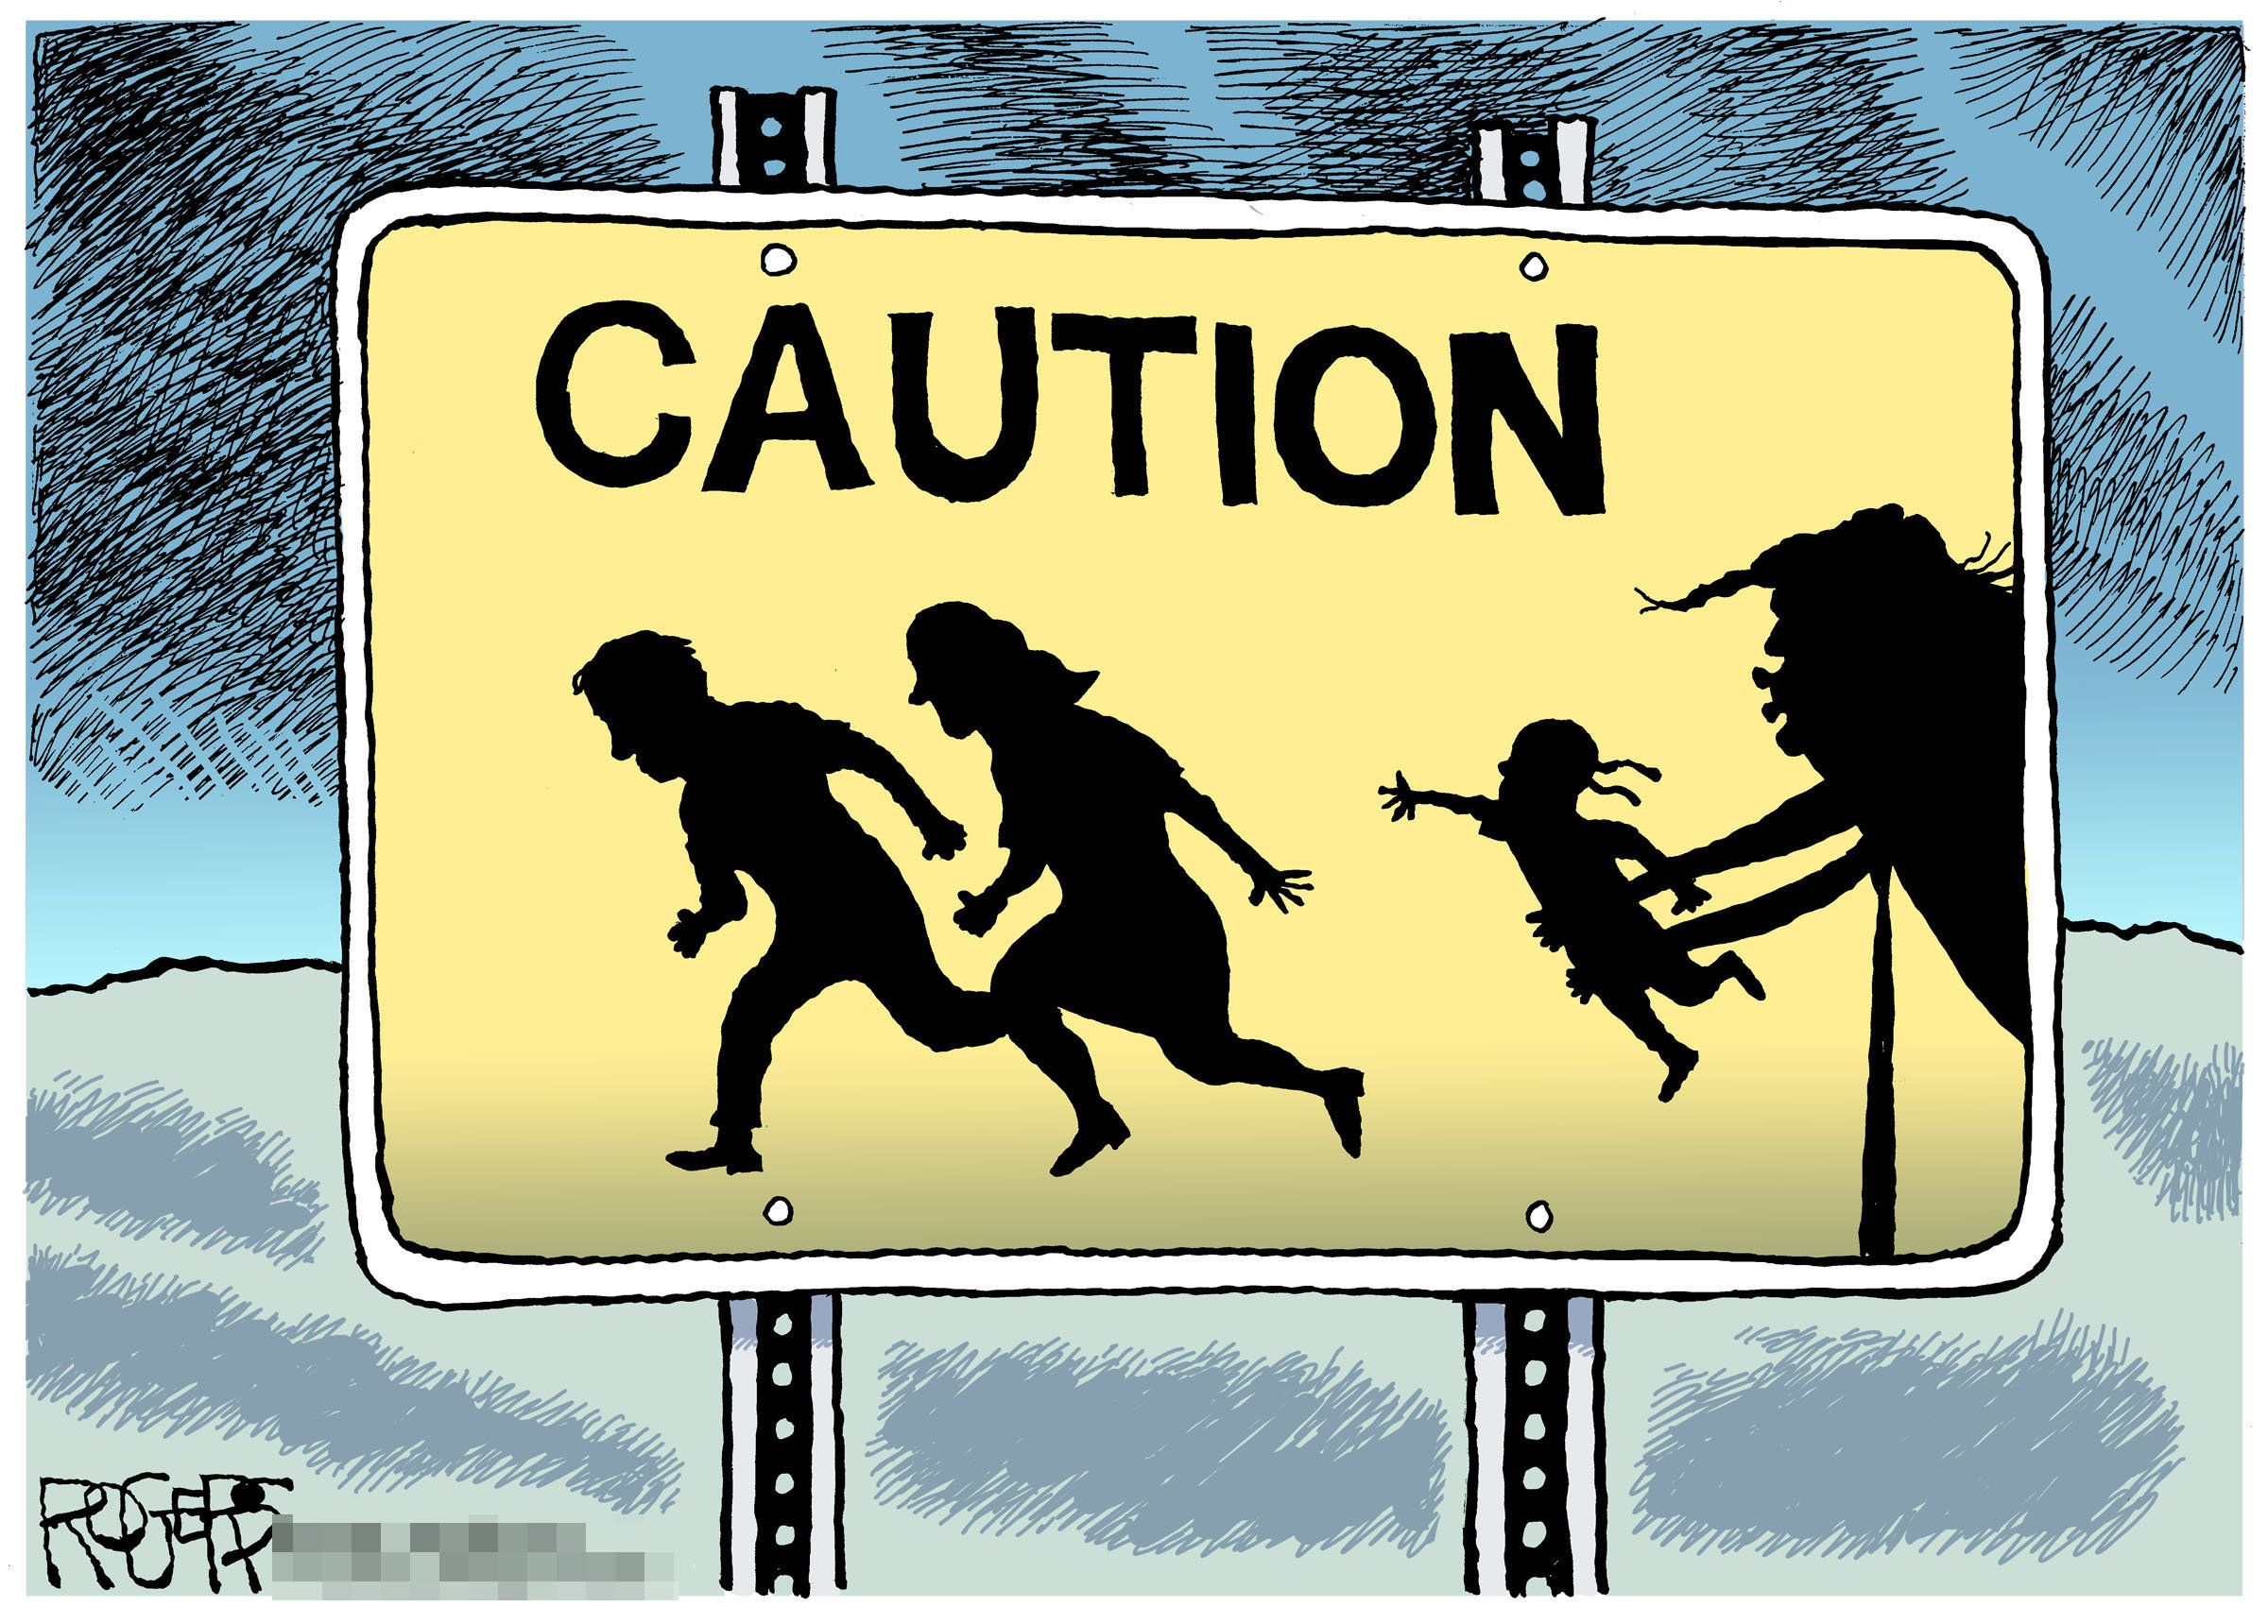 One of Rob Rogers' rejected cartoons, spotlighting Trump's policy separating undocumented immigrant children from their